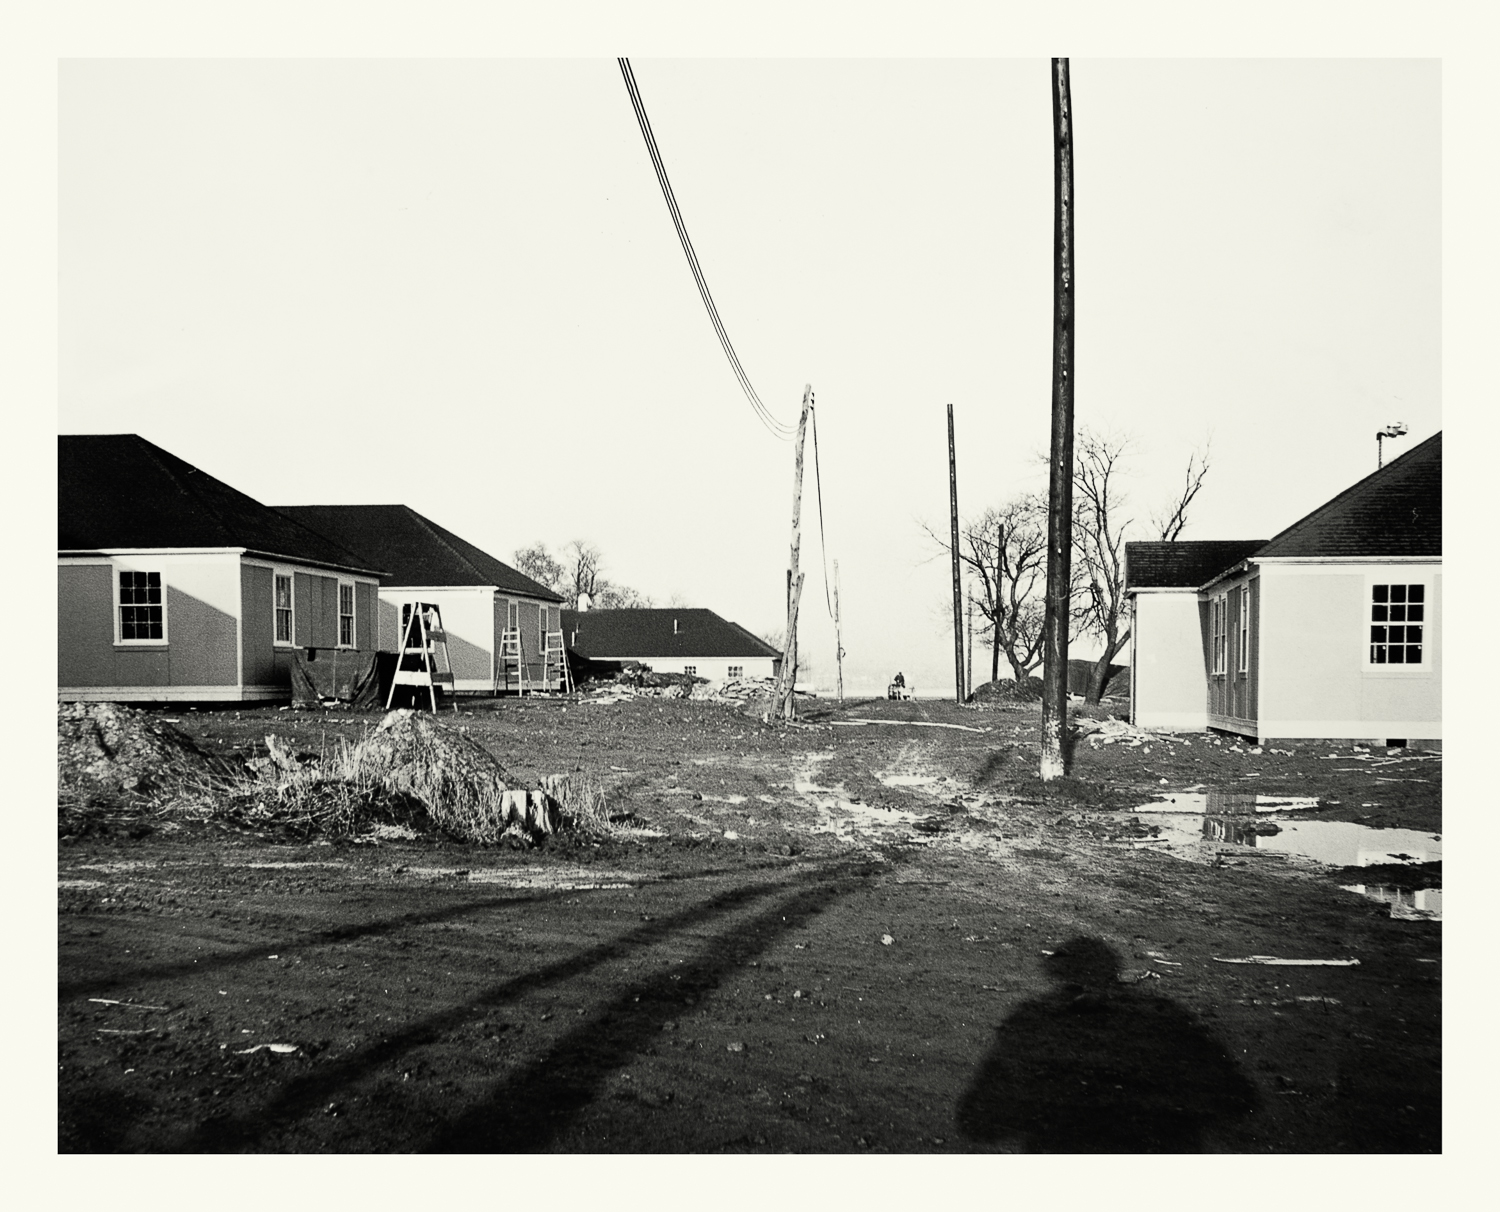 """Photograph No. PC 468. """"Photograph depicting the construction of Naval personnel housing at the Hingham Naval Ammunition Depot."""" c. 1944; Records of Naval Districts and Shore Establishments, RG 181, NARA Boston."""